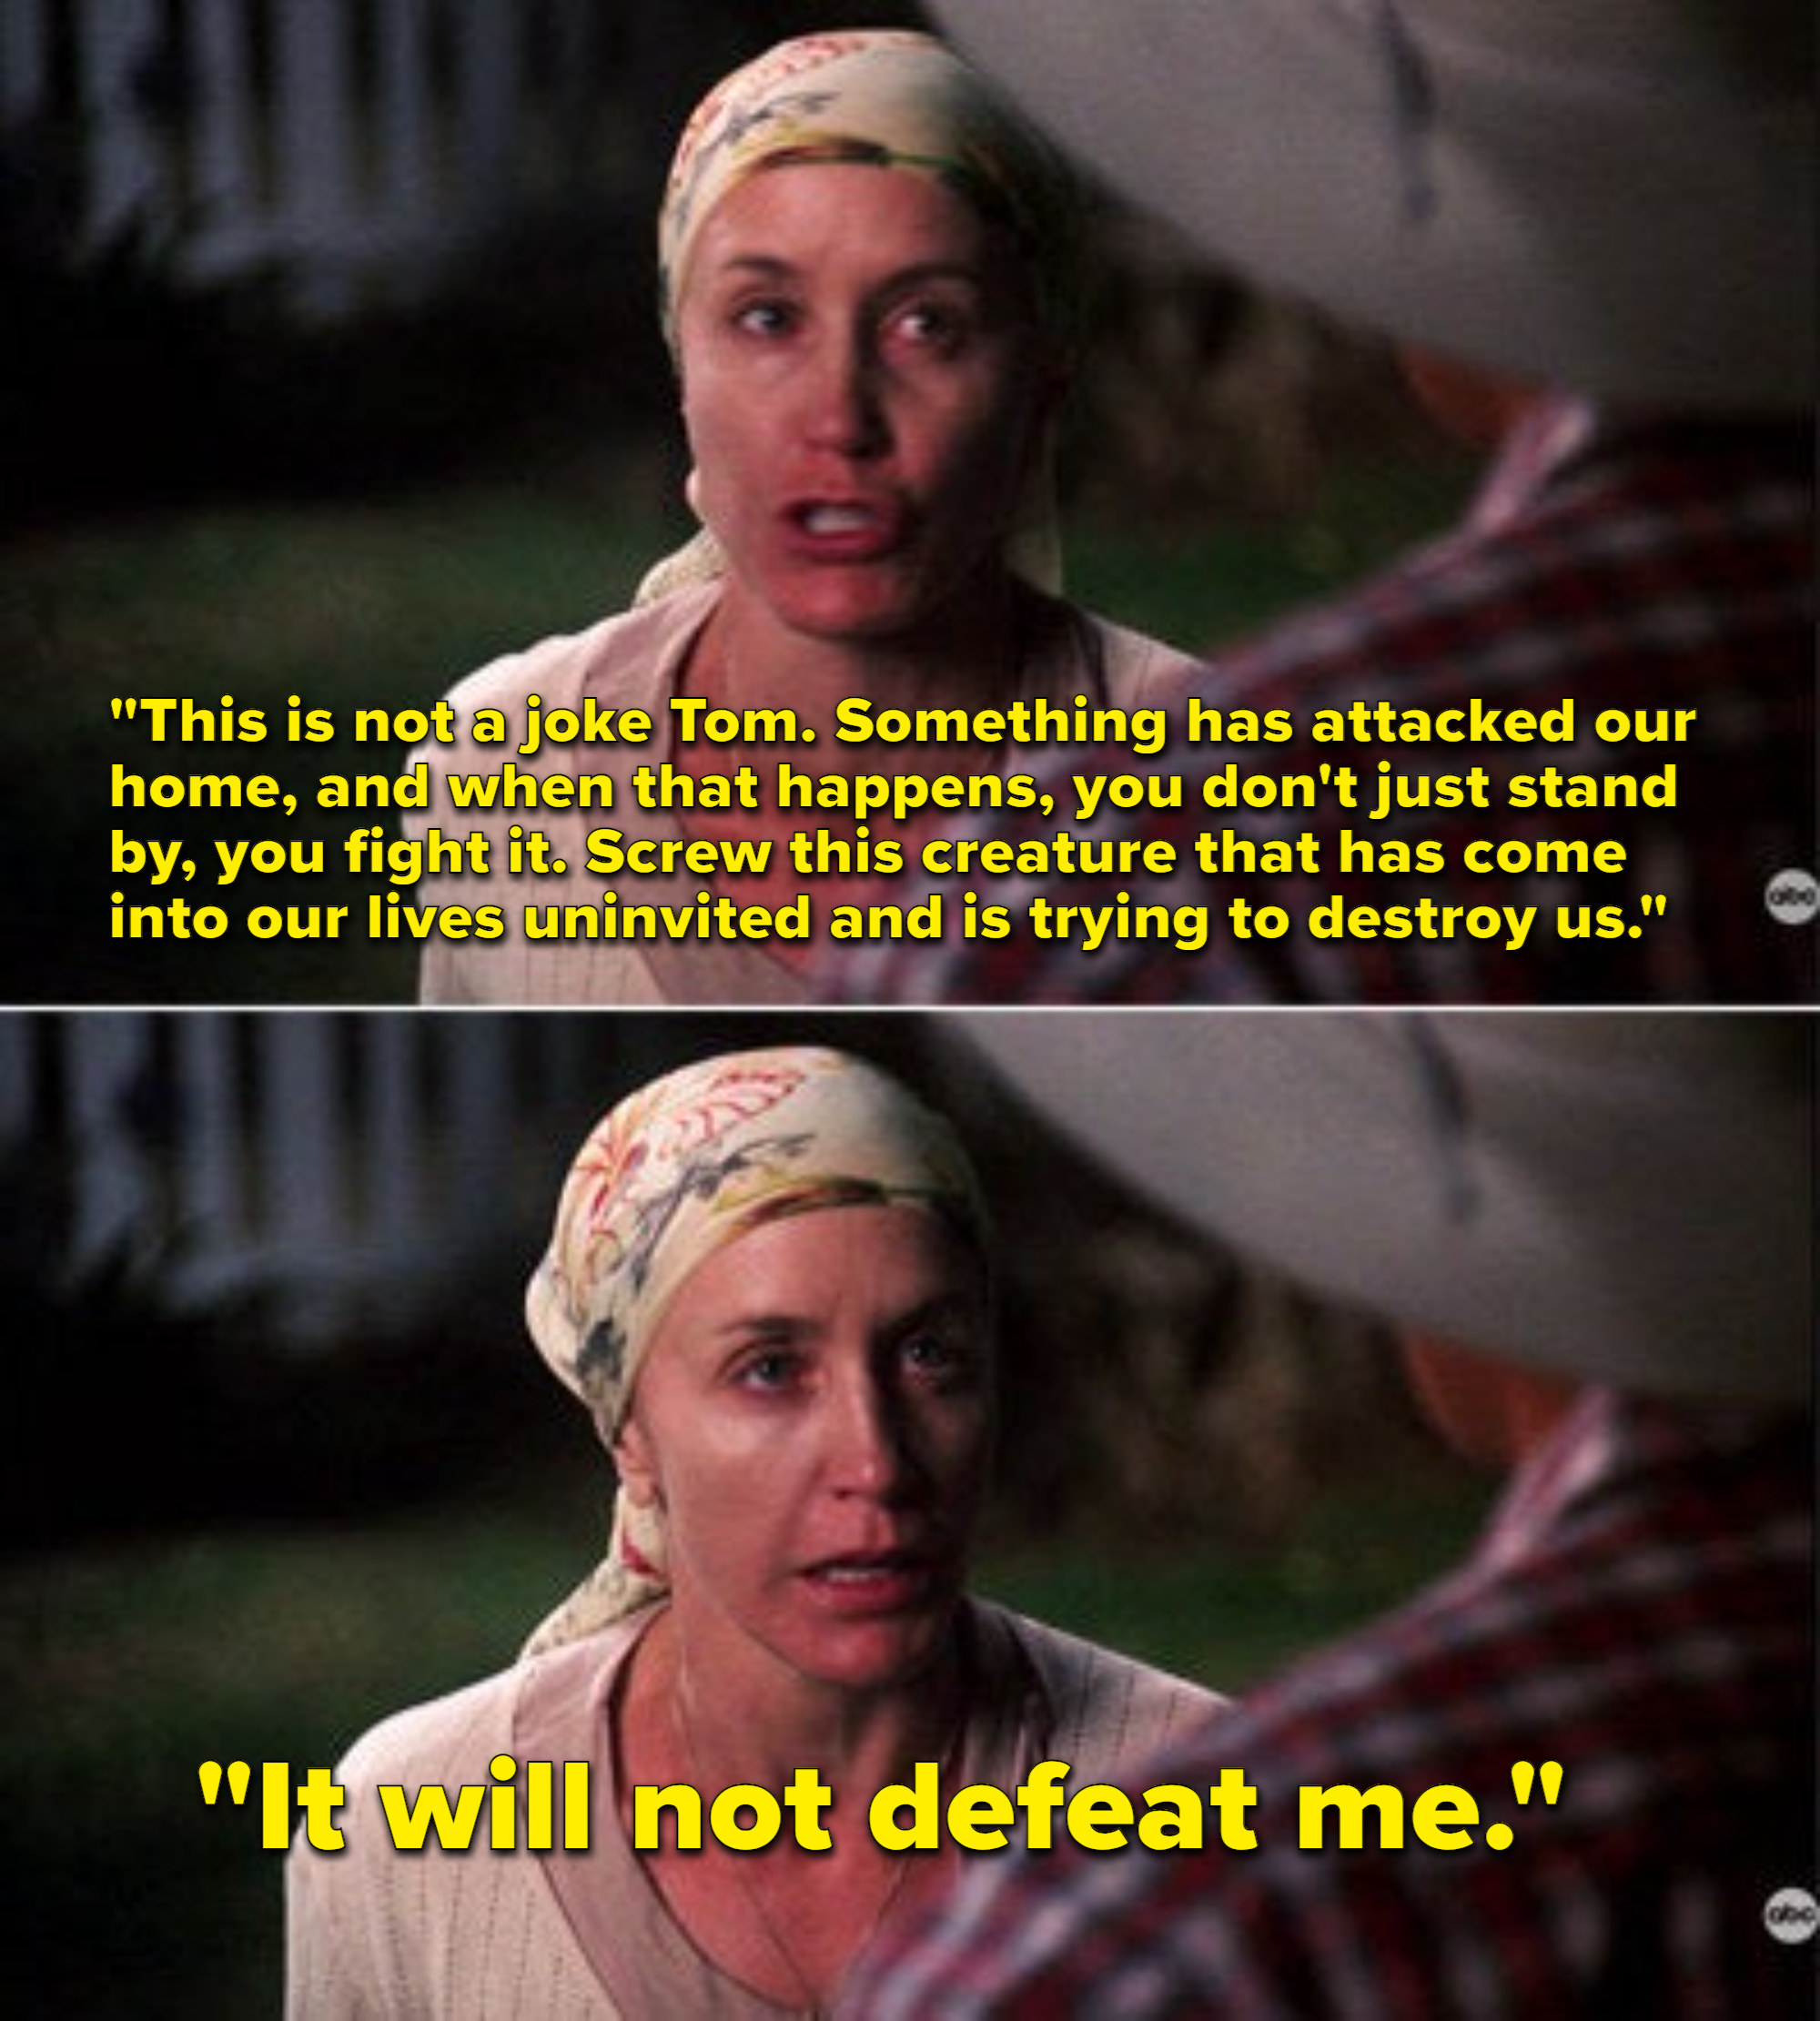 Lynette telling Tom the possum has attacked their home and she will not be defeated